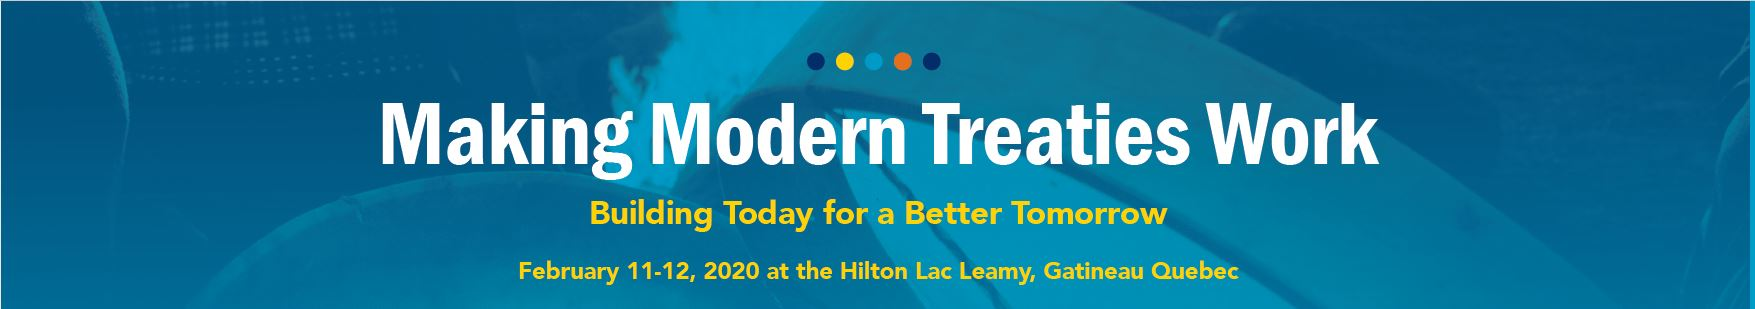 Making Modern Treaties Work: Building Today for a Better Tomorrow